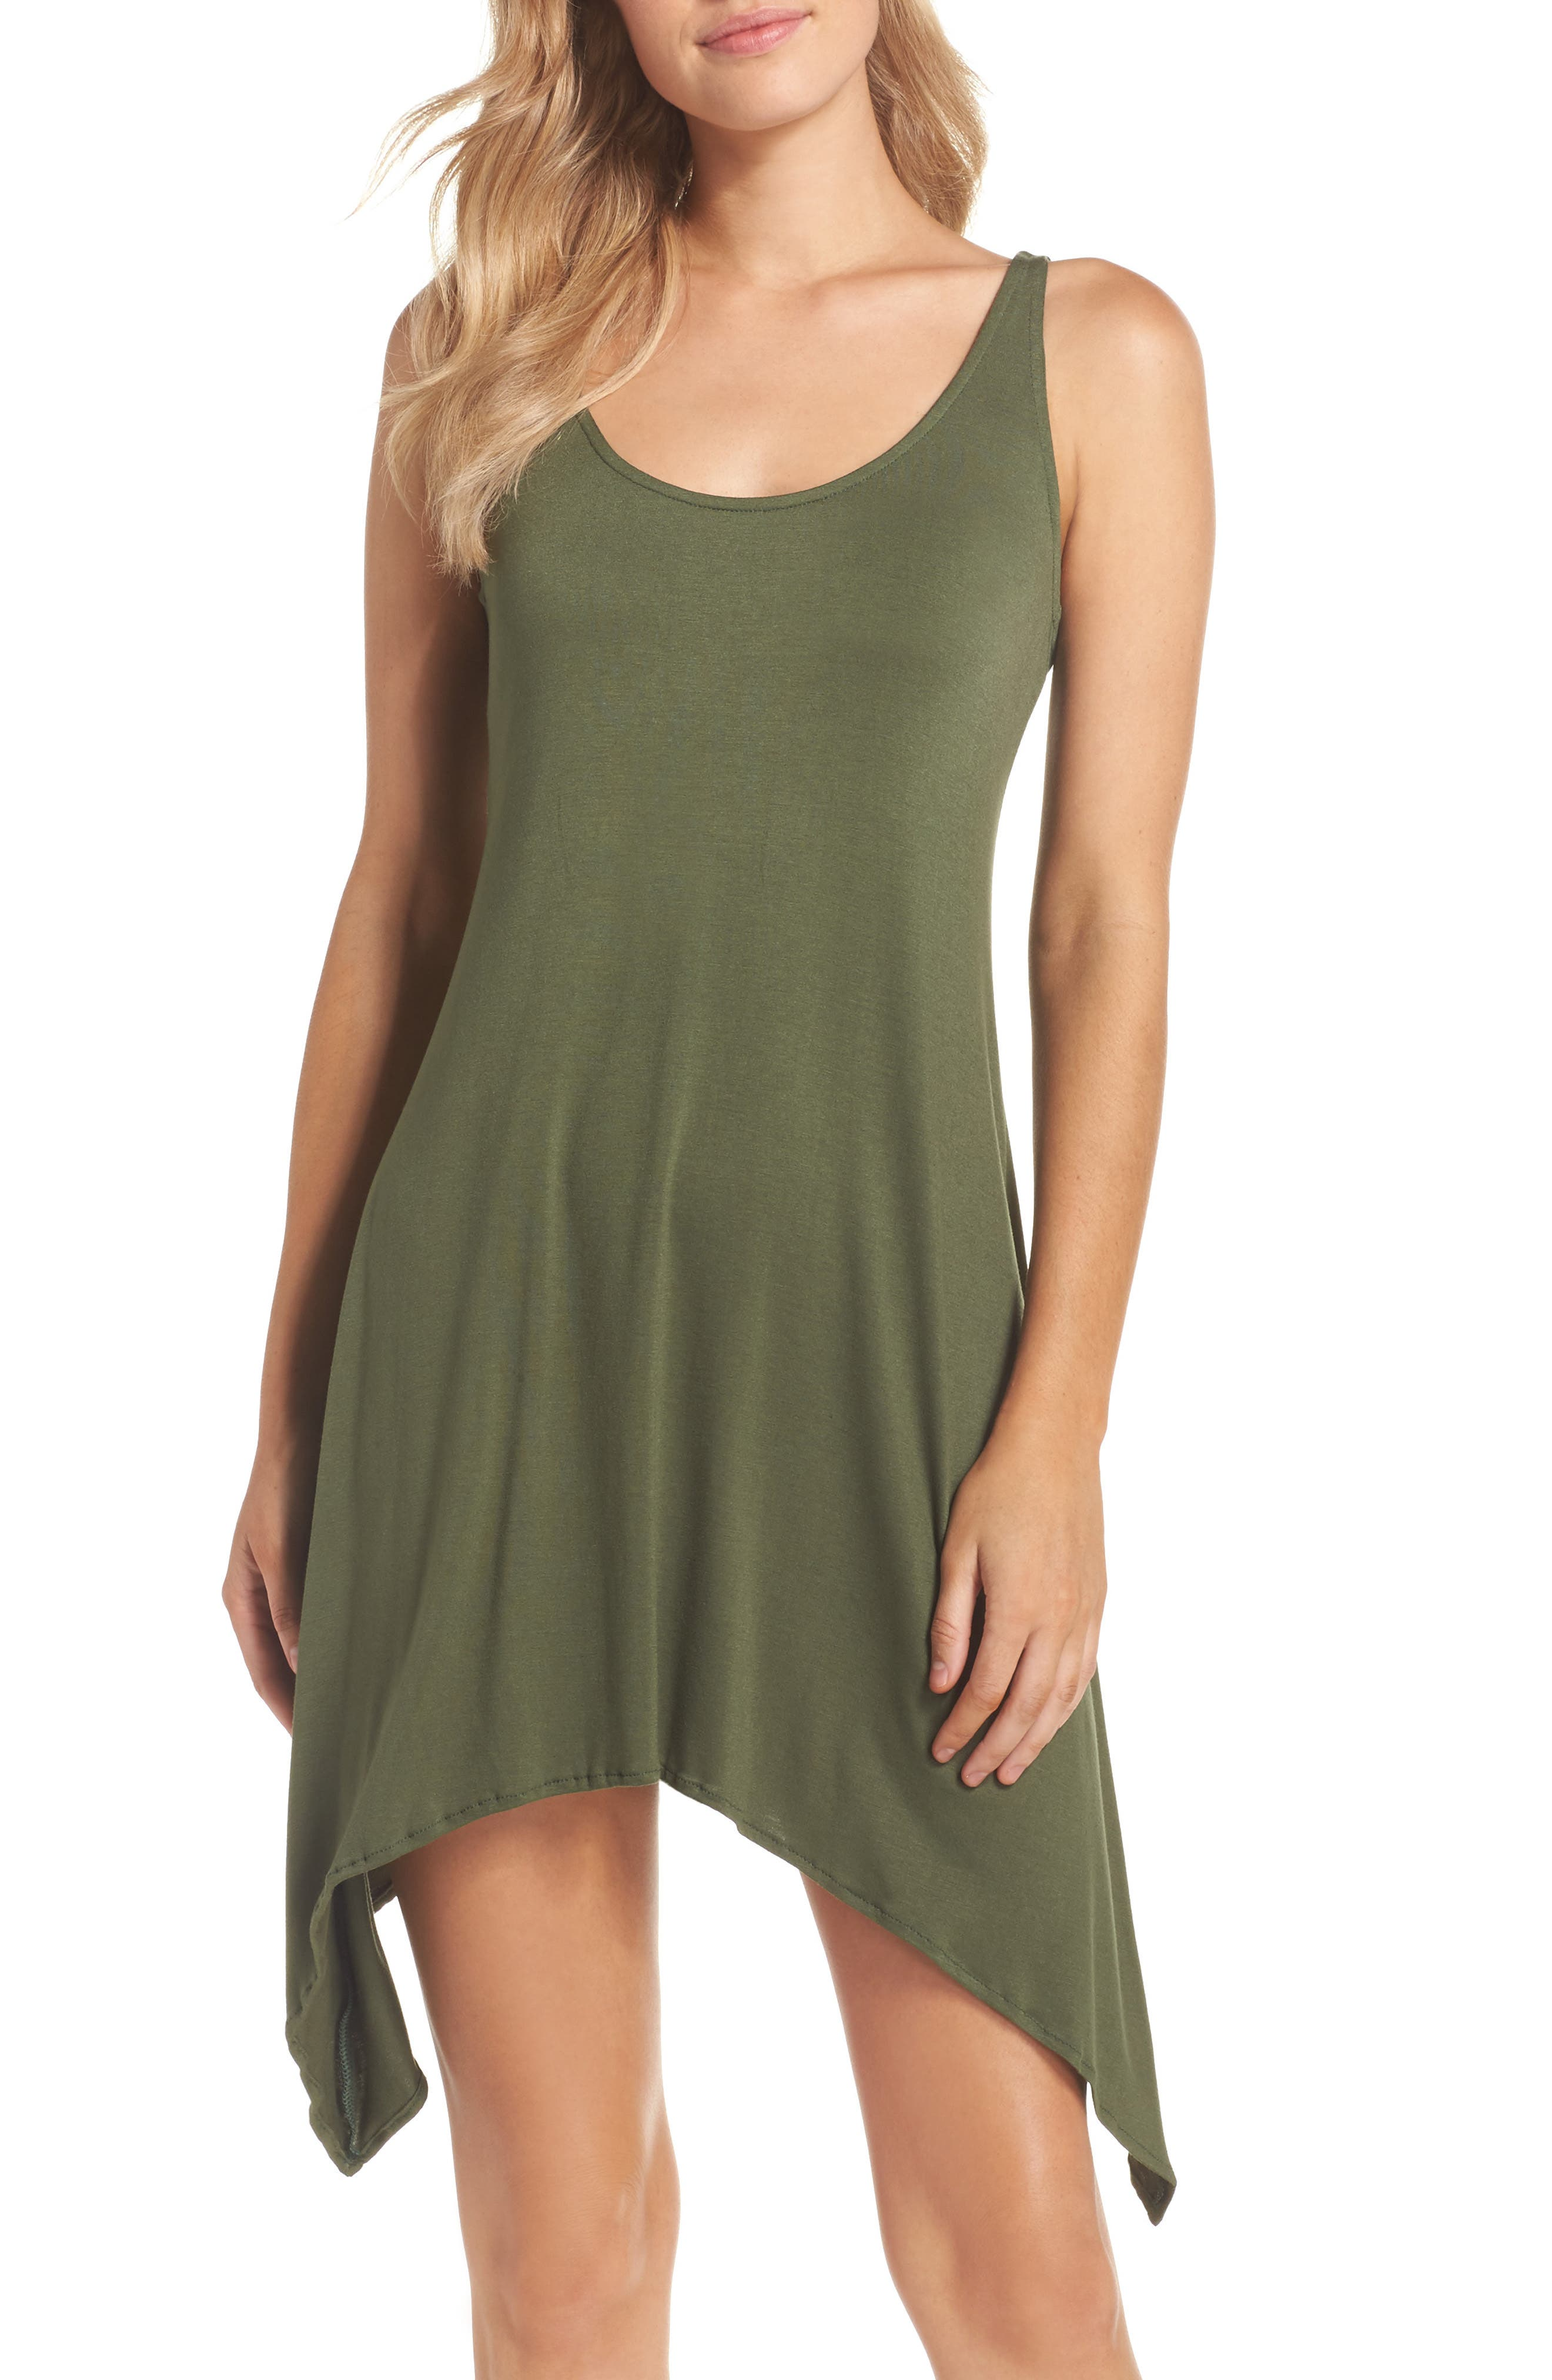 Take Cover Cover-Up Dress,                         Main,                         color, Olive